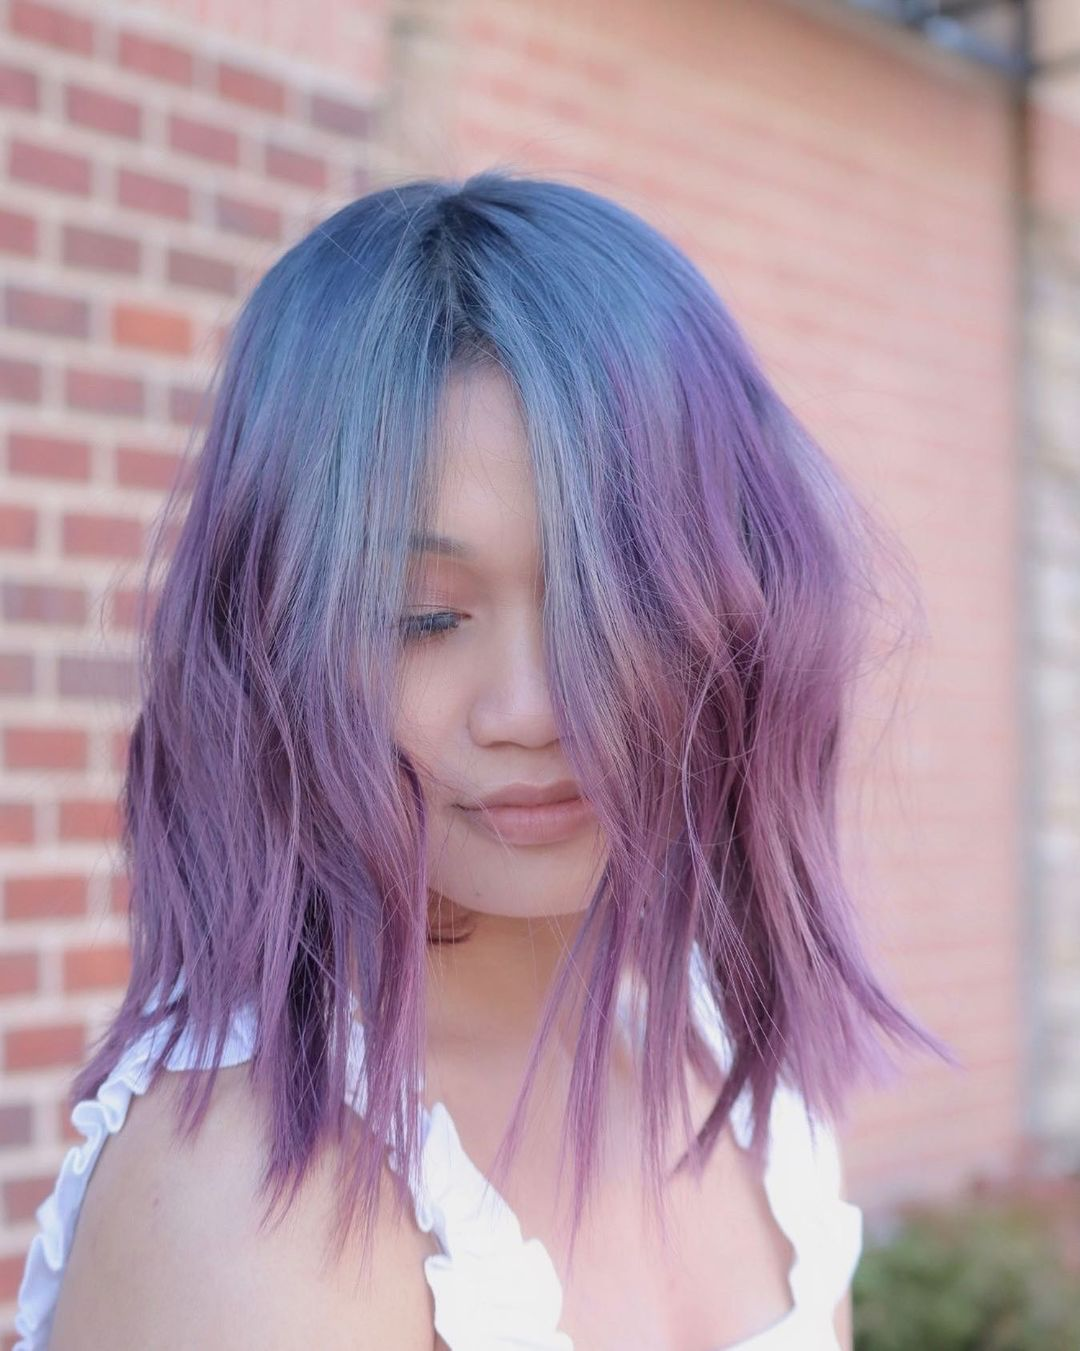 10 Of The Best E-Girl Hairstyles You Should Try!